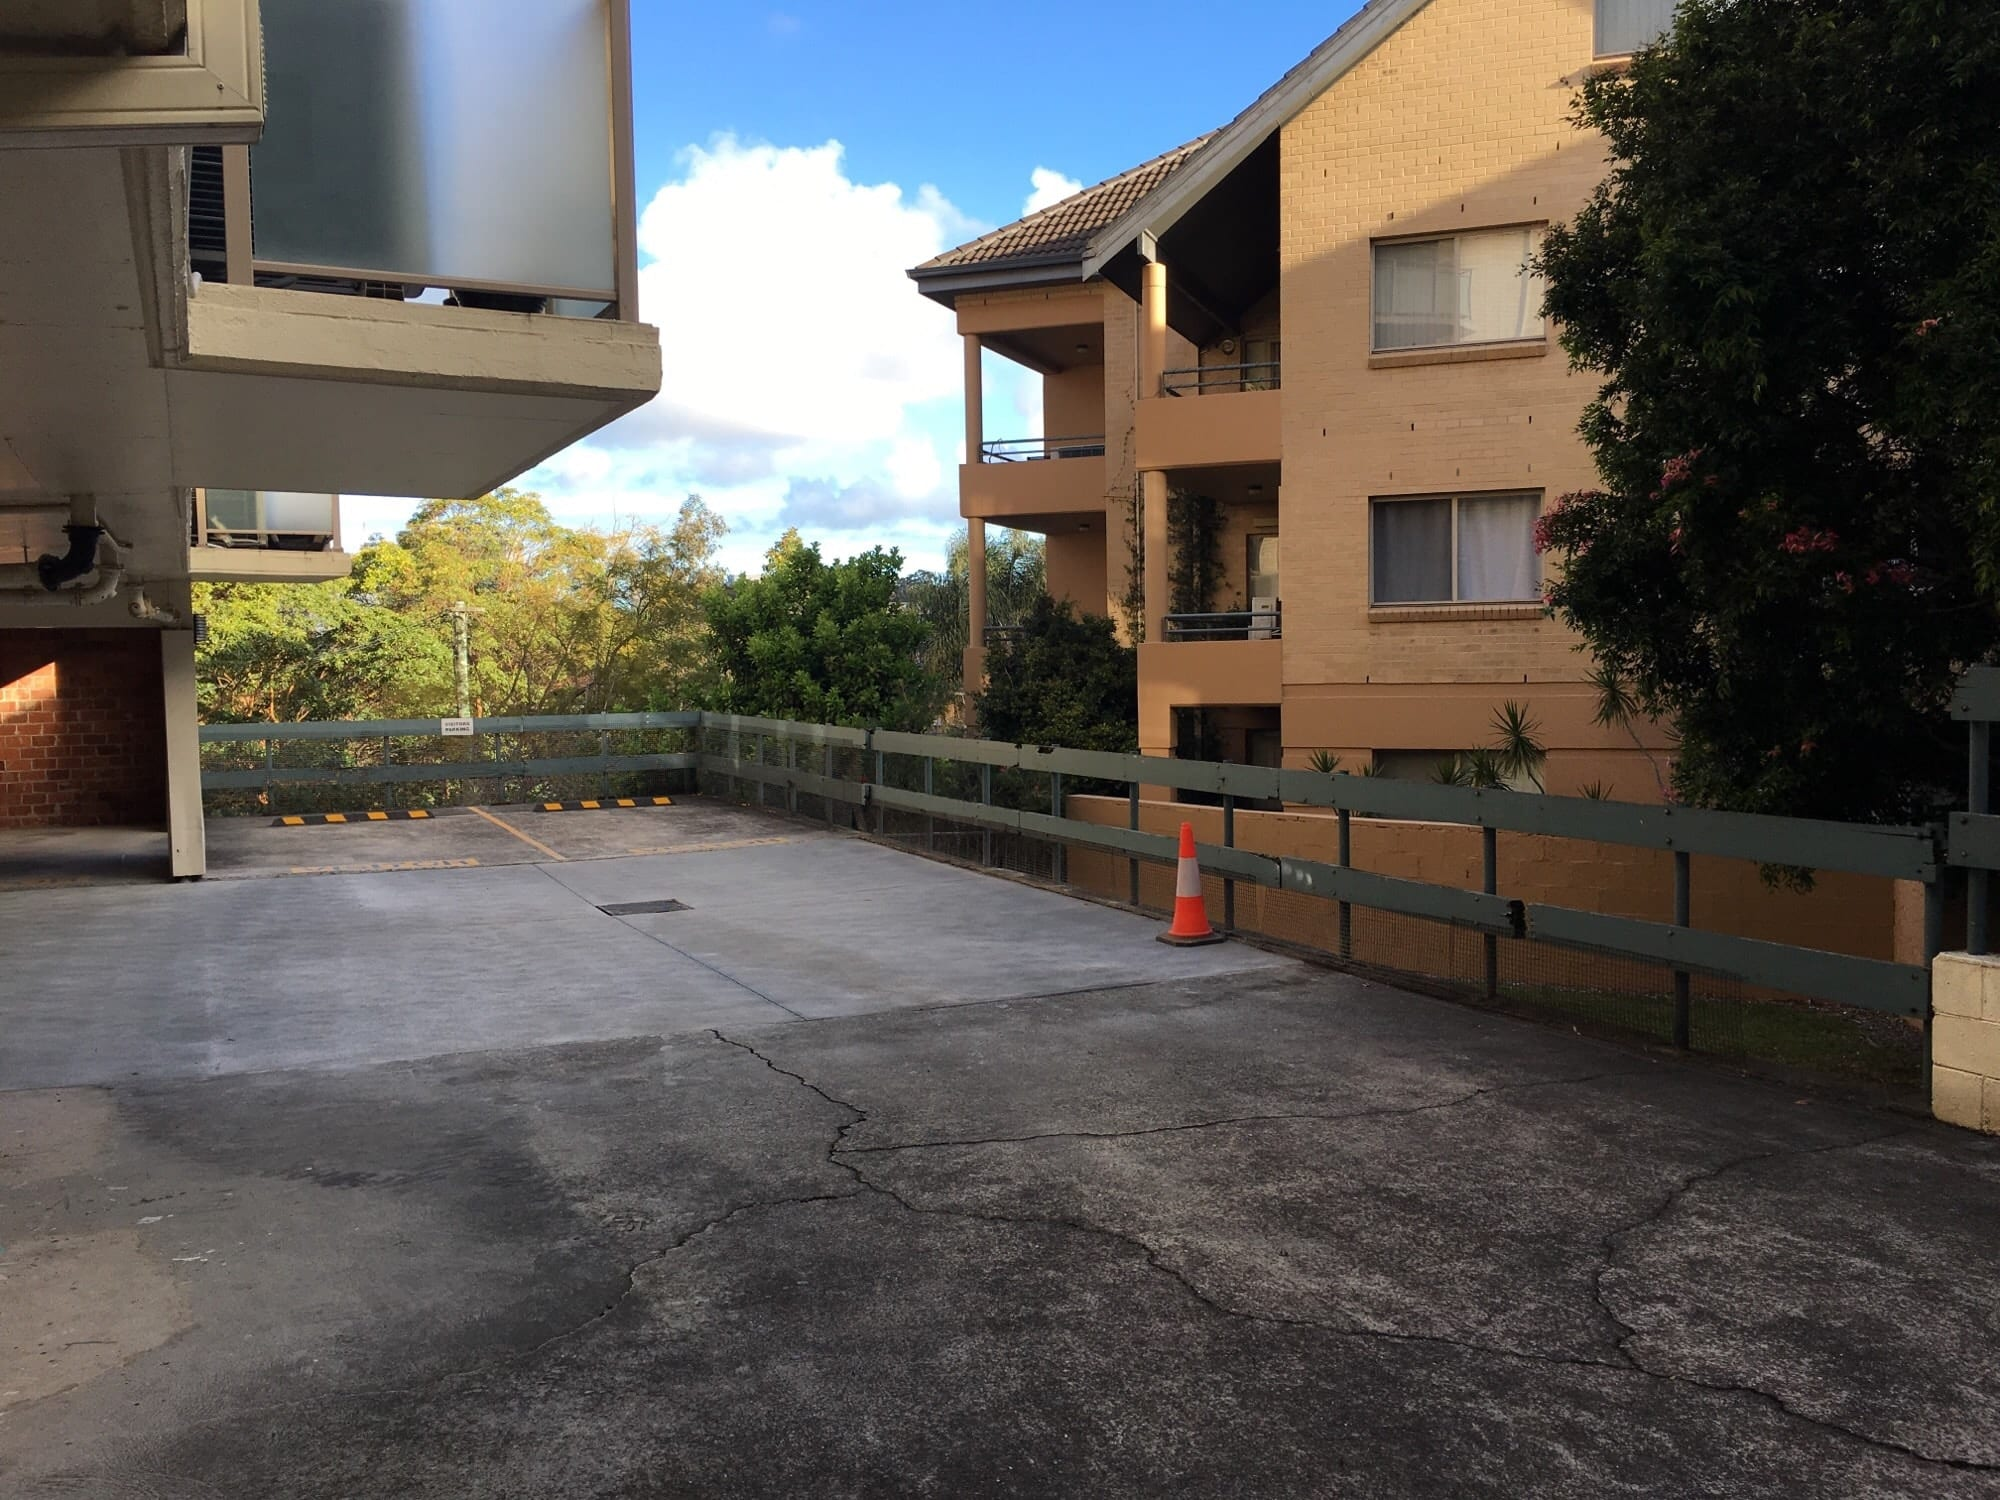 unsafe perimeter edge protection on an apartment complex